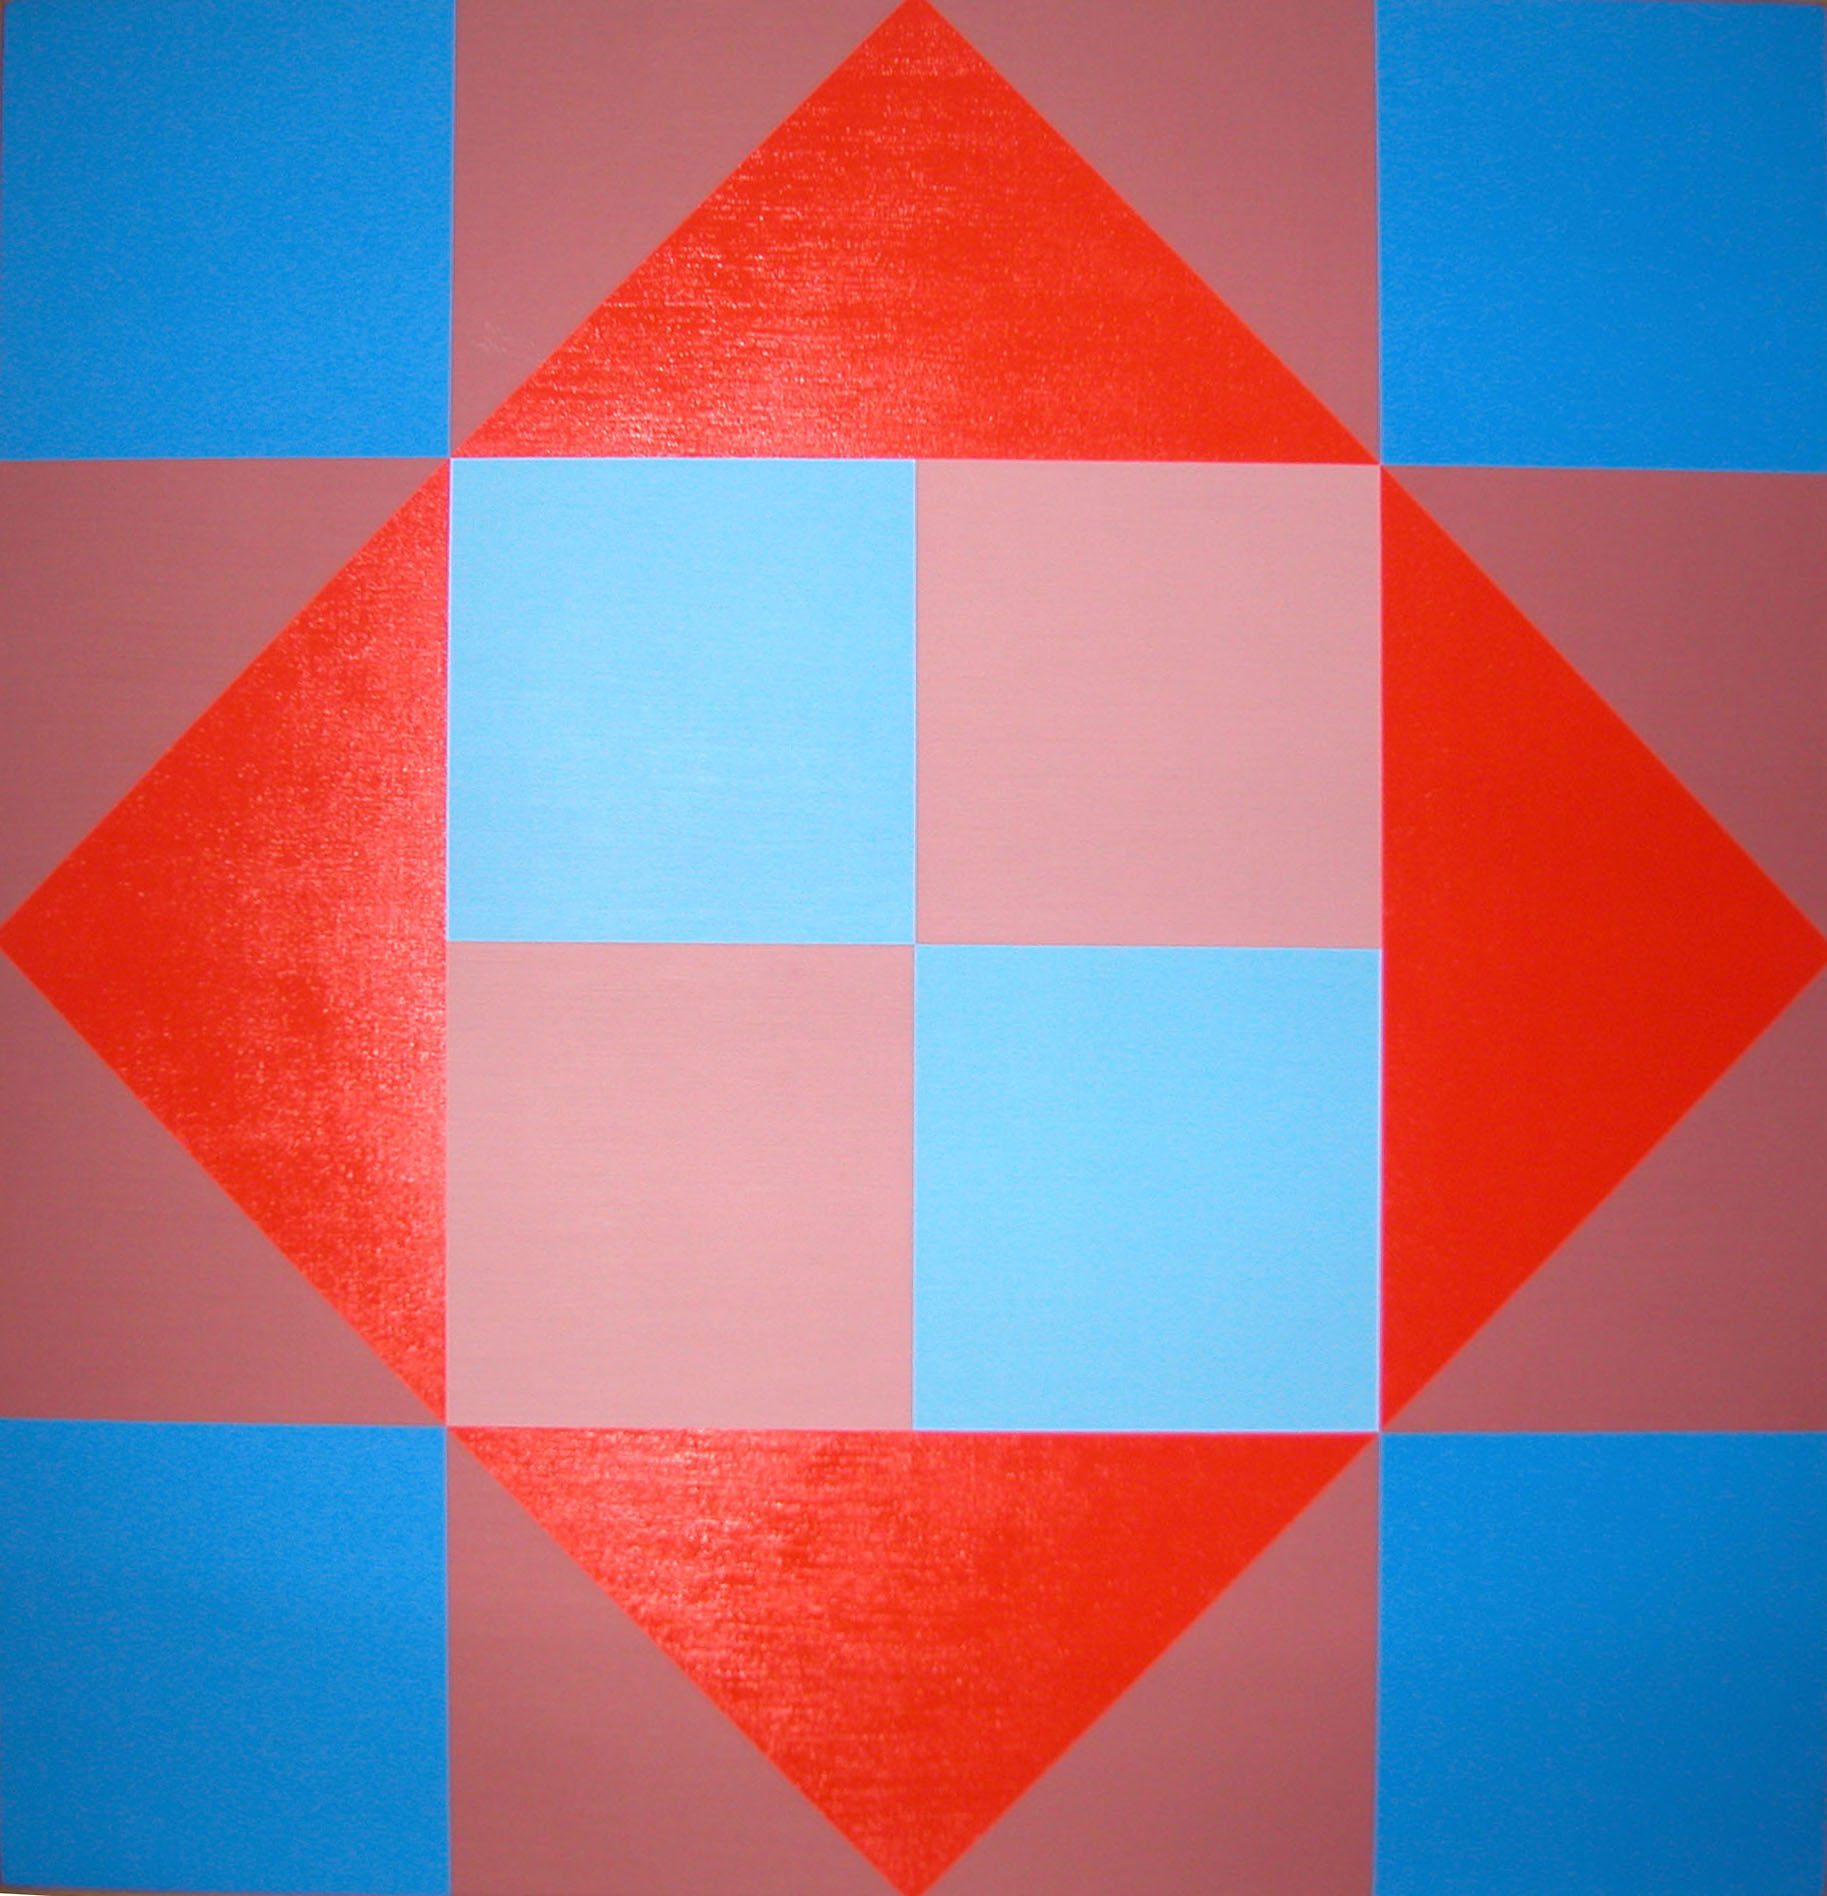 #9 , 1995  oil on canvas 30 x 30 inches; 76.2 x 76.2 centimeters